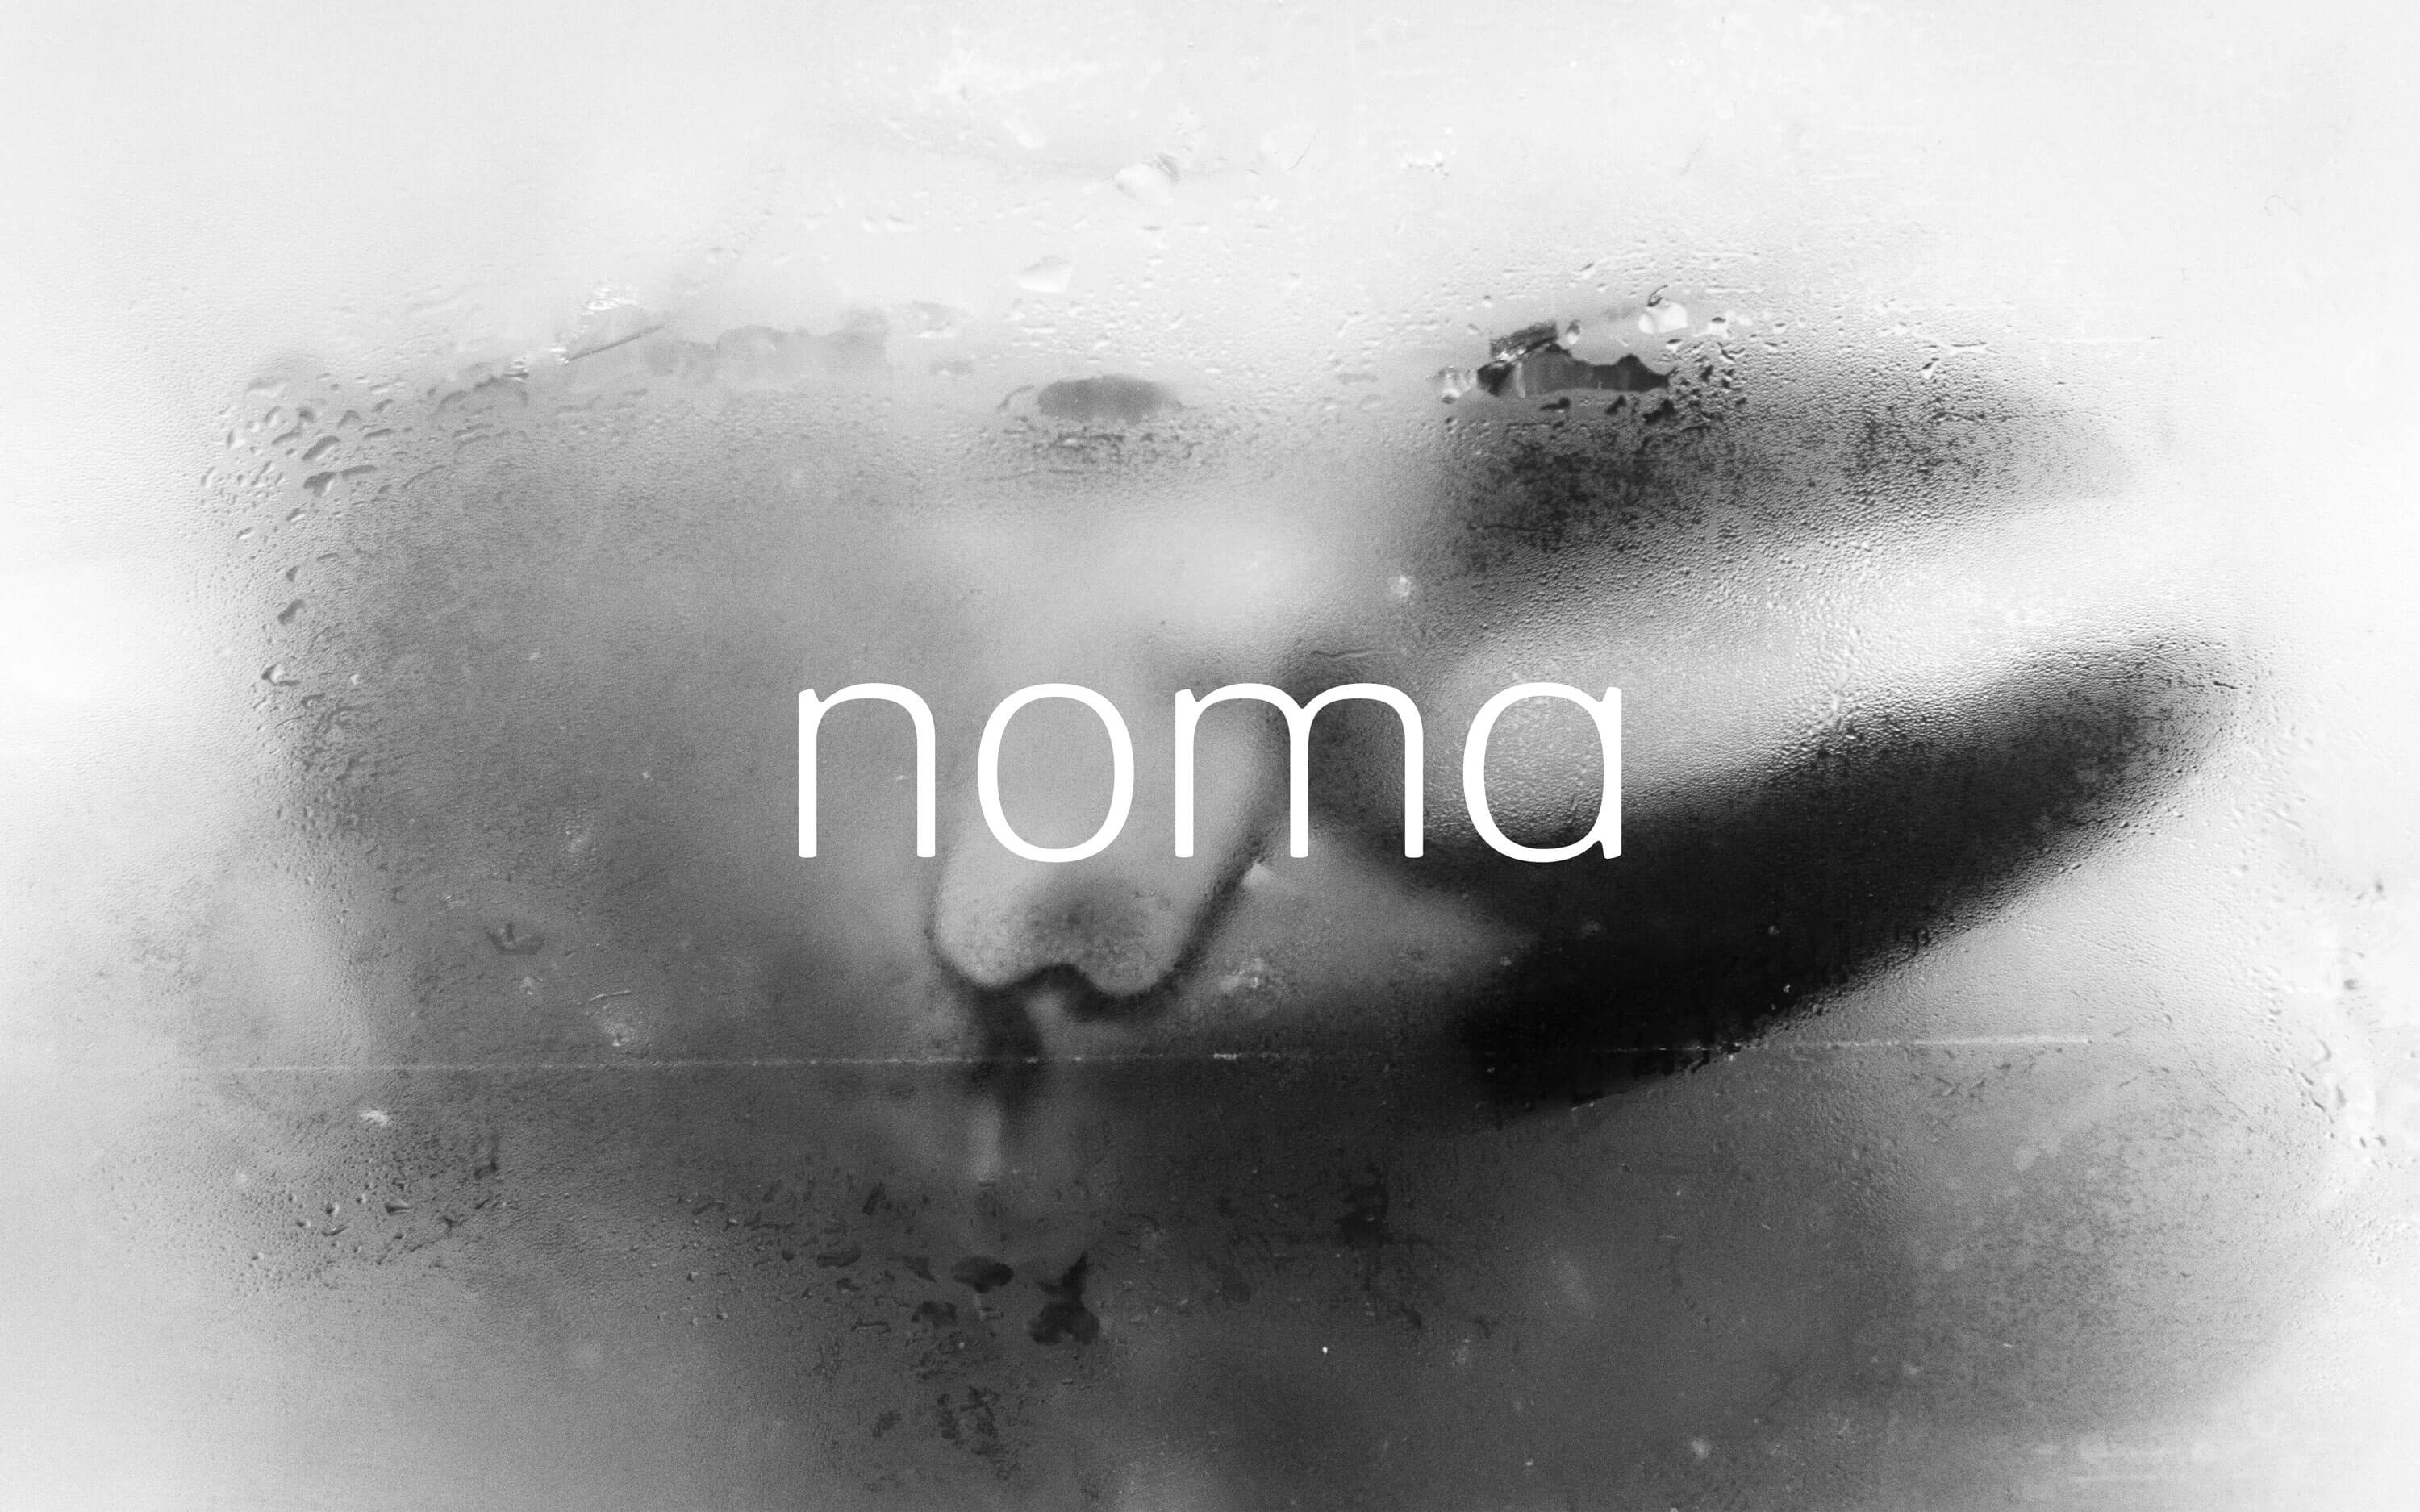 Black and white image of a lobster claw and white noma wordmark